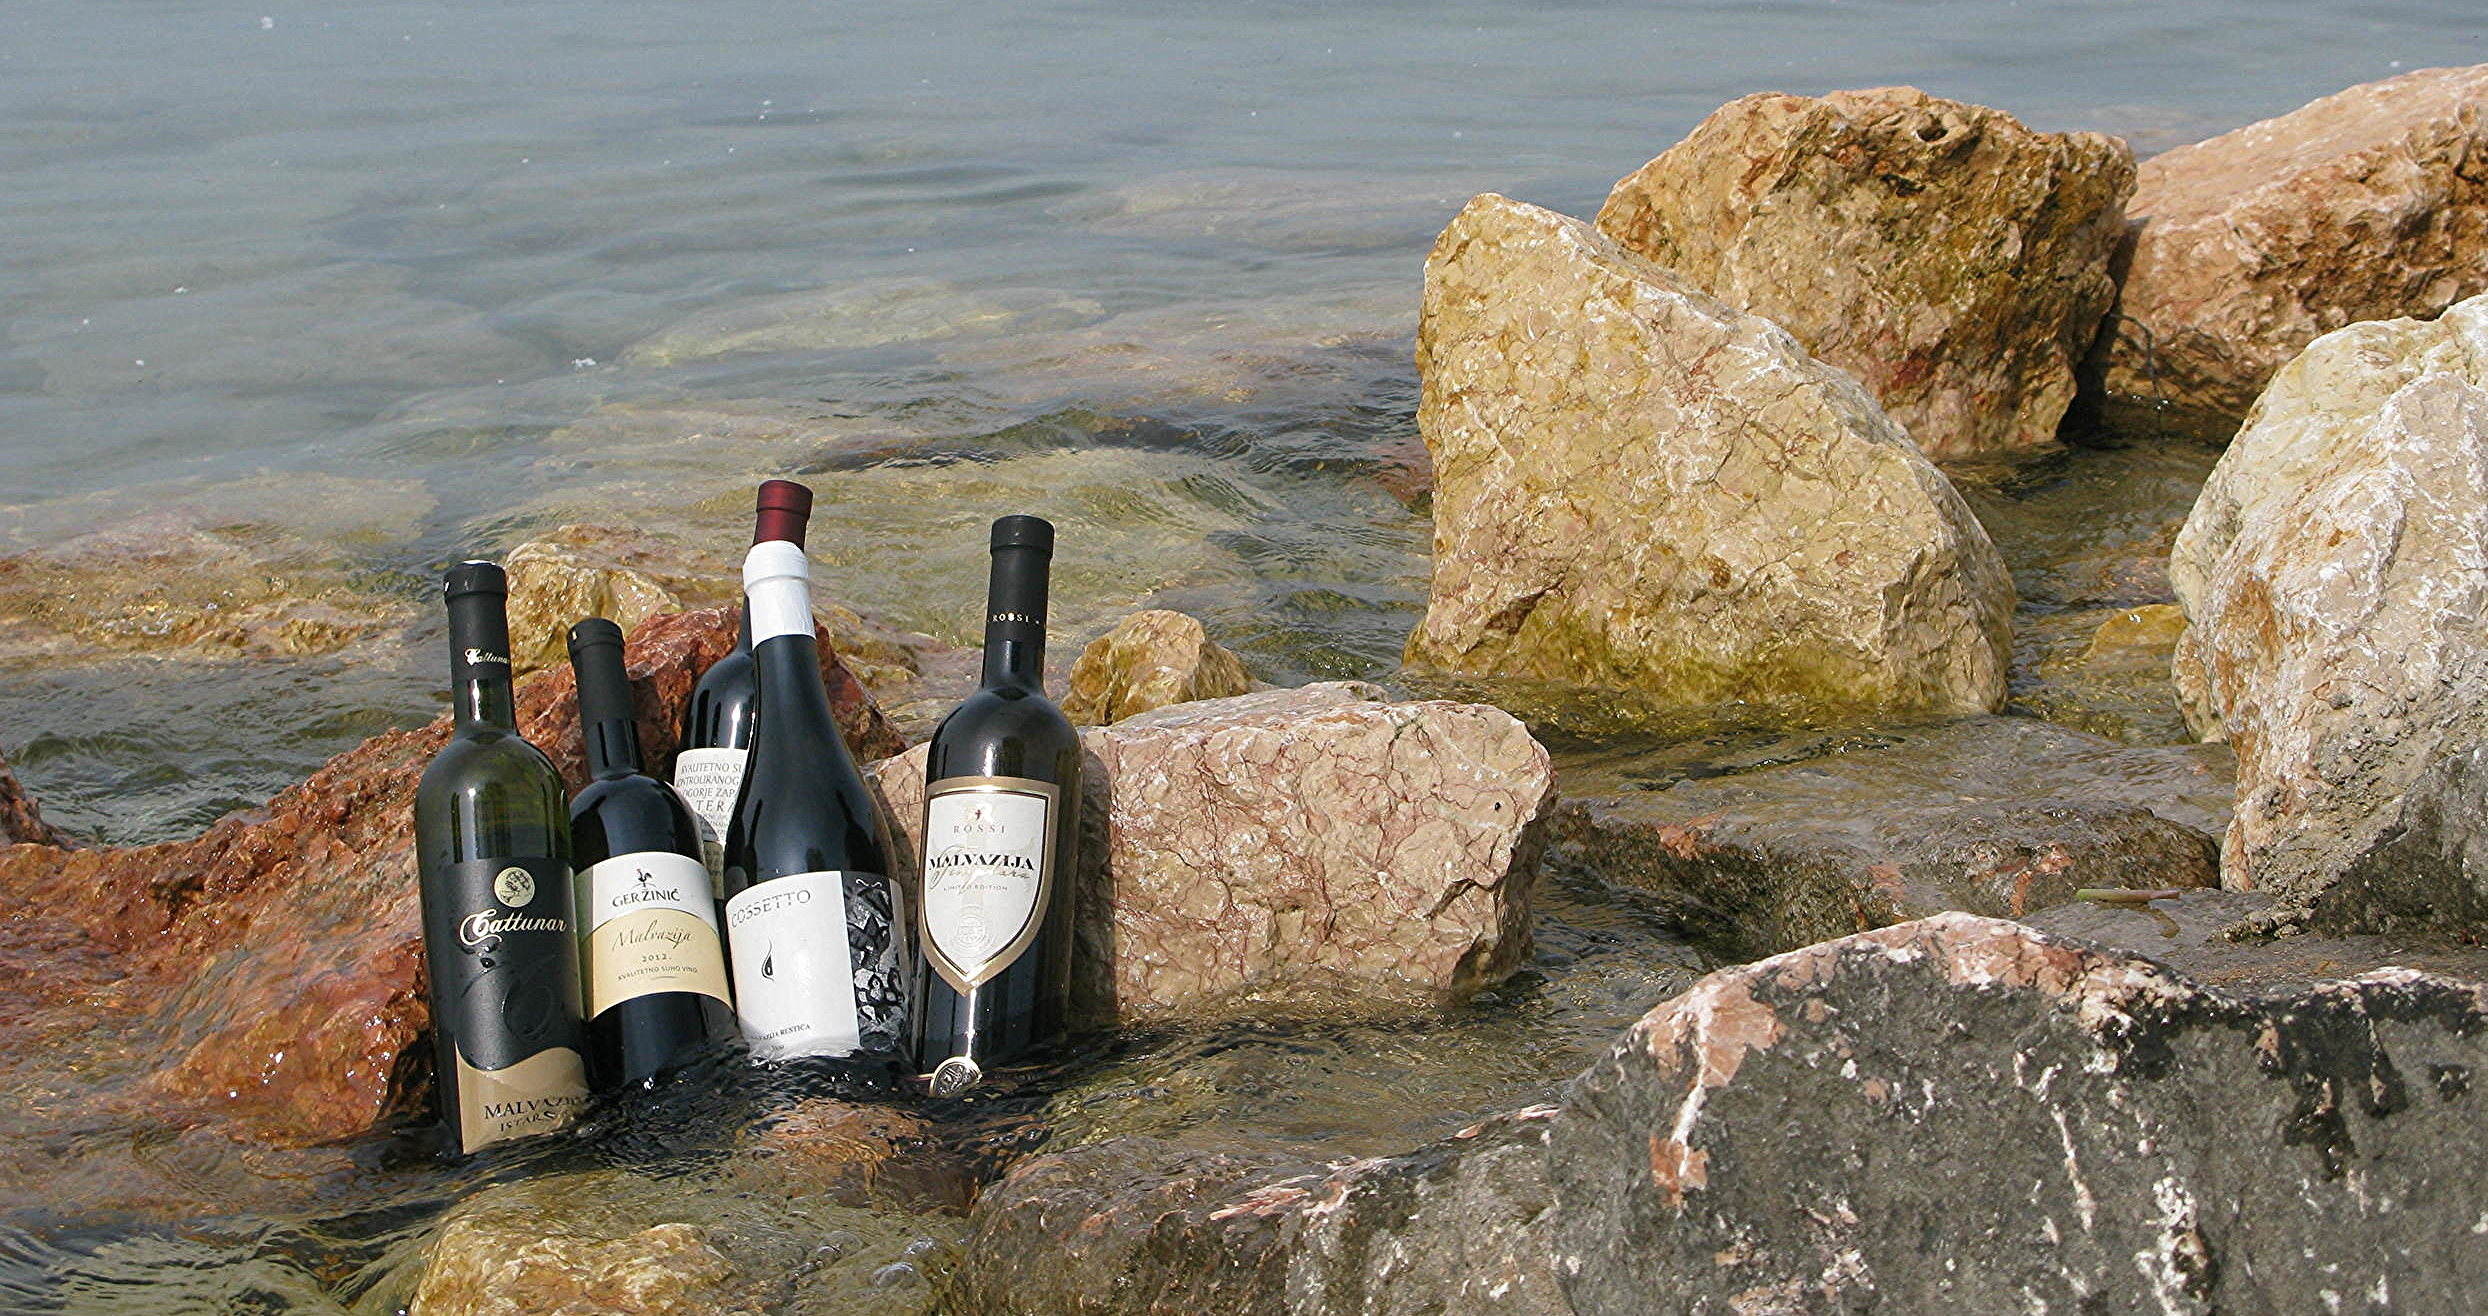 The new wave of Croatian winemakers is doing marvellous things with Malvazija